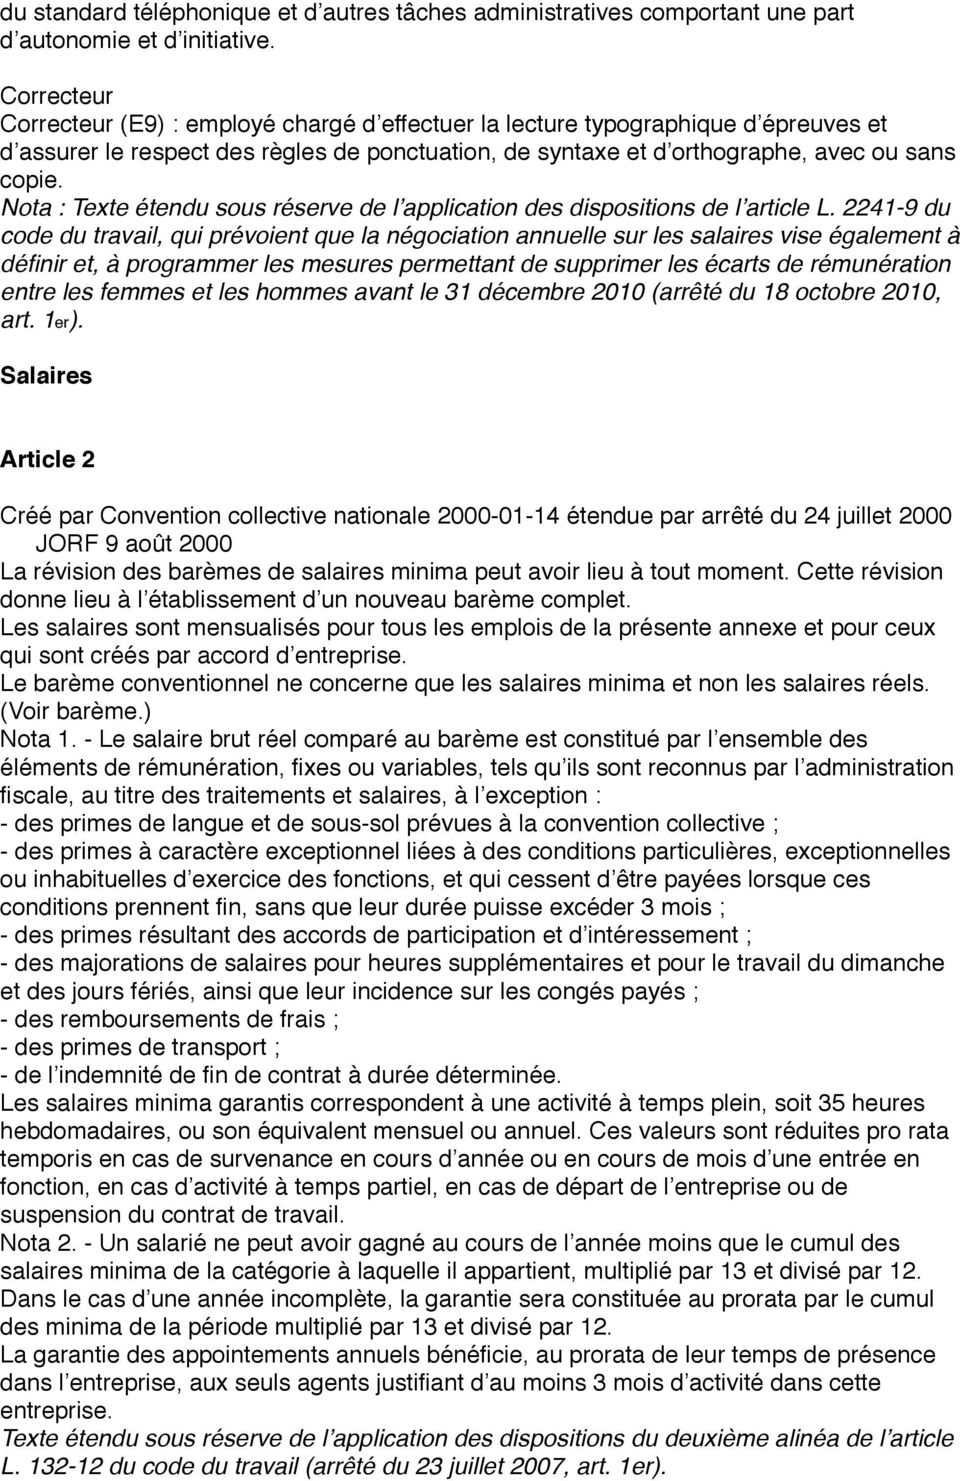 Nota : Texte étendu sous réserve de l application des dispositions de l article L.